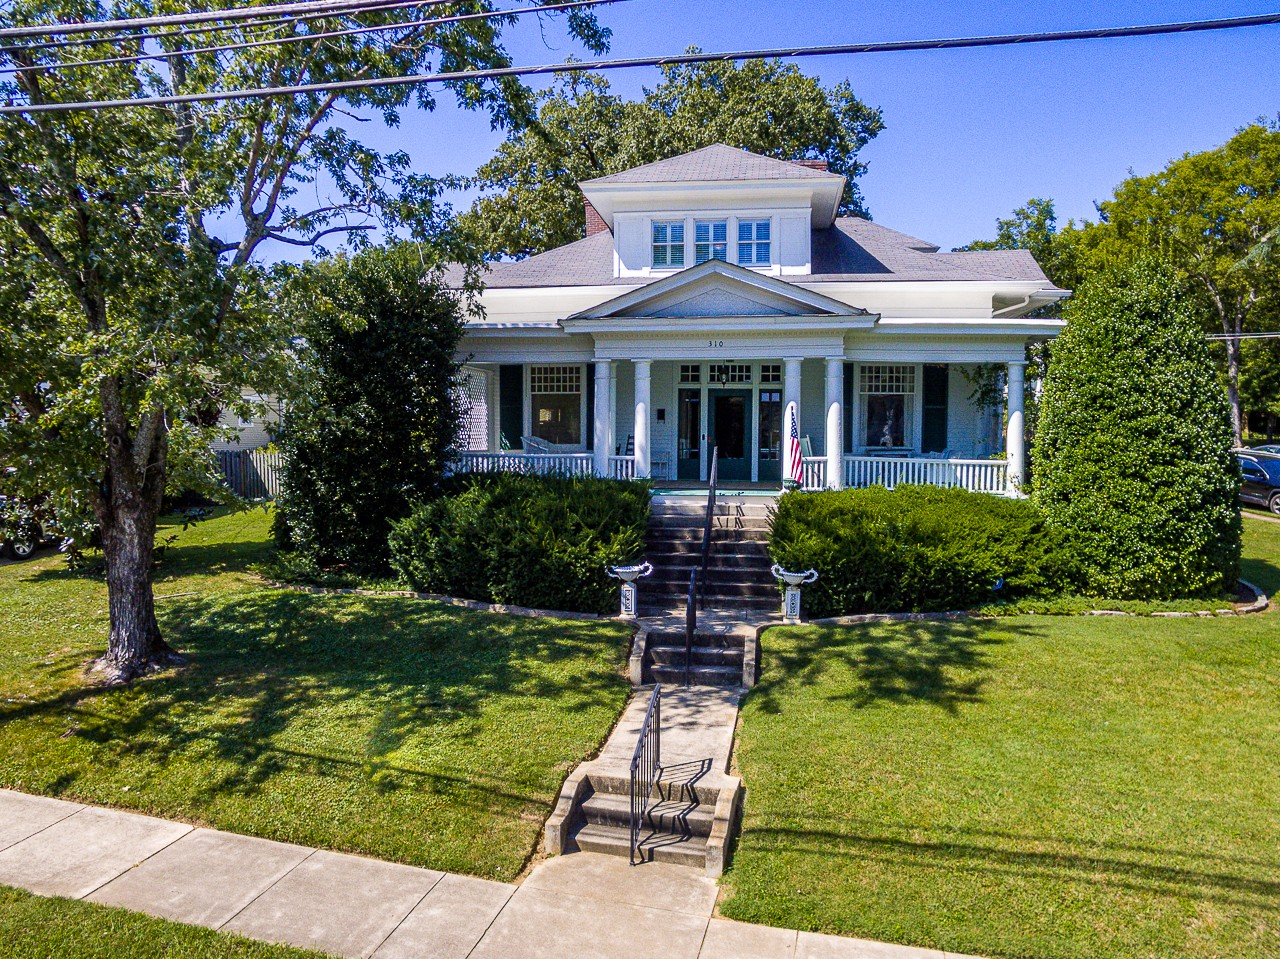 310 Mulberry Ave Property Photo - Fayetteville, TN real estate listing